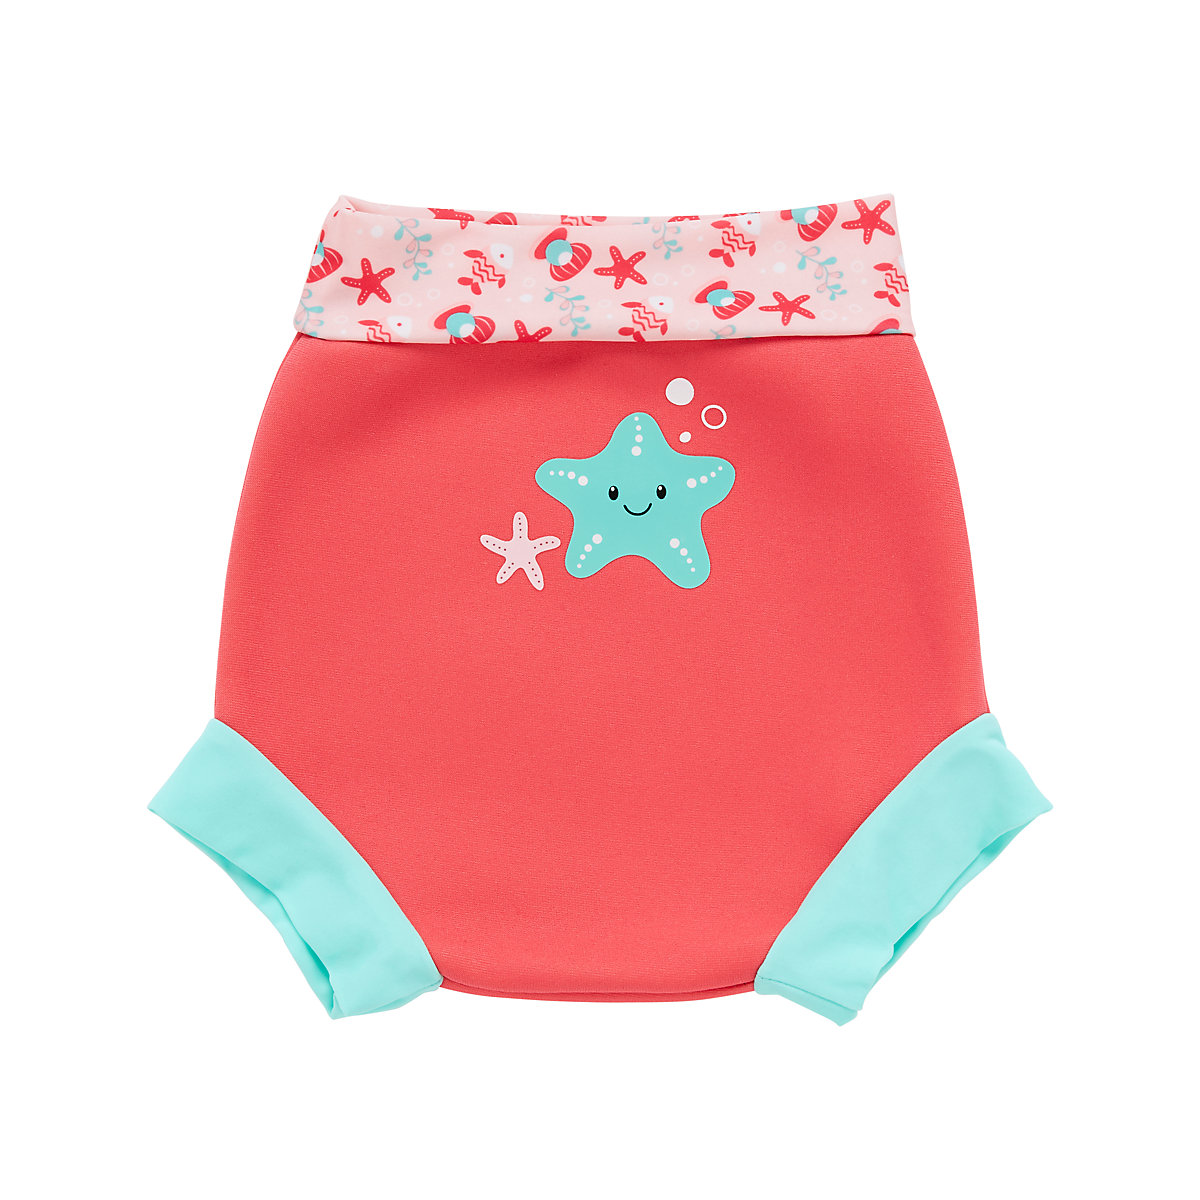 Mothercare Baby Nappy Cover Girls 12 18 Months